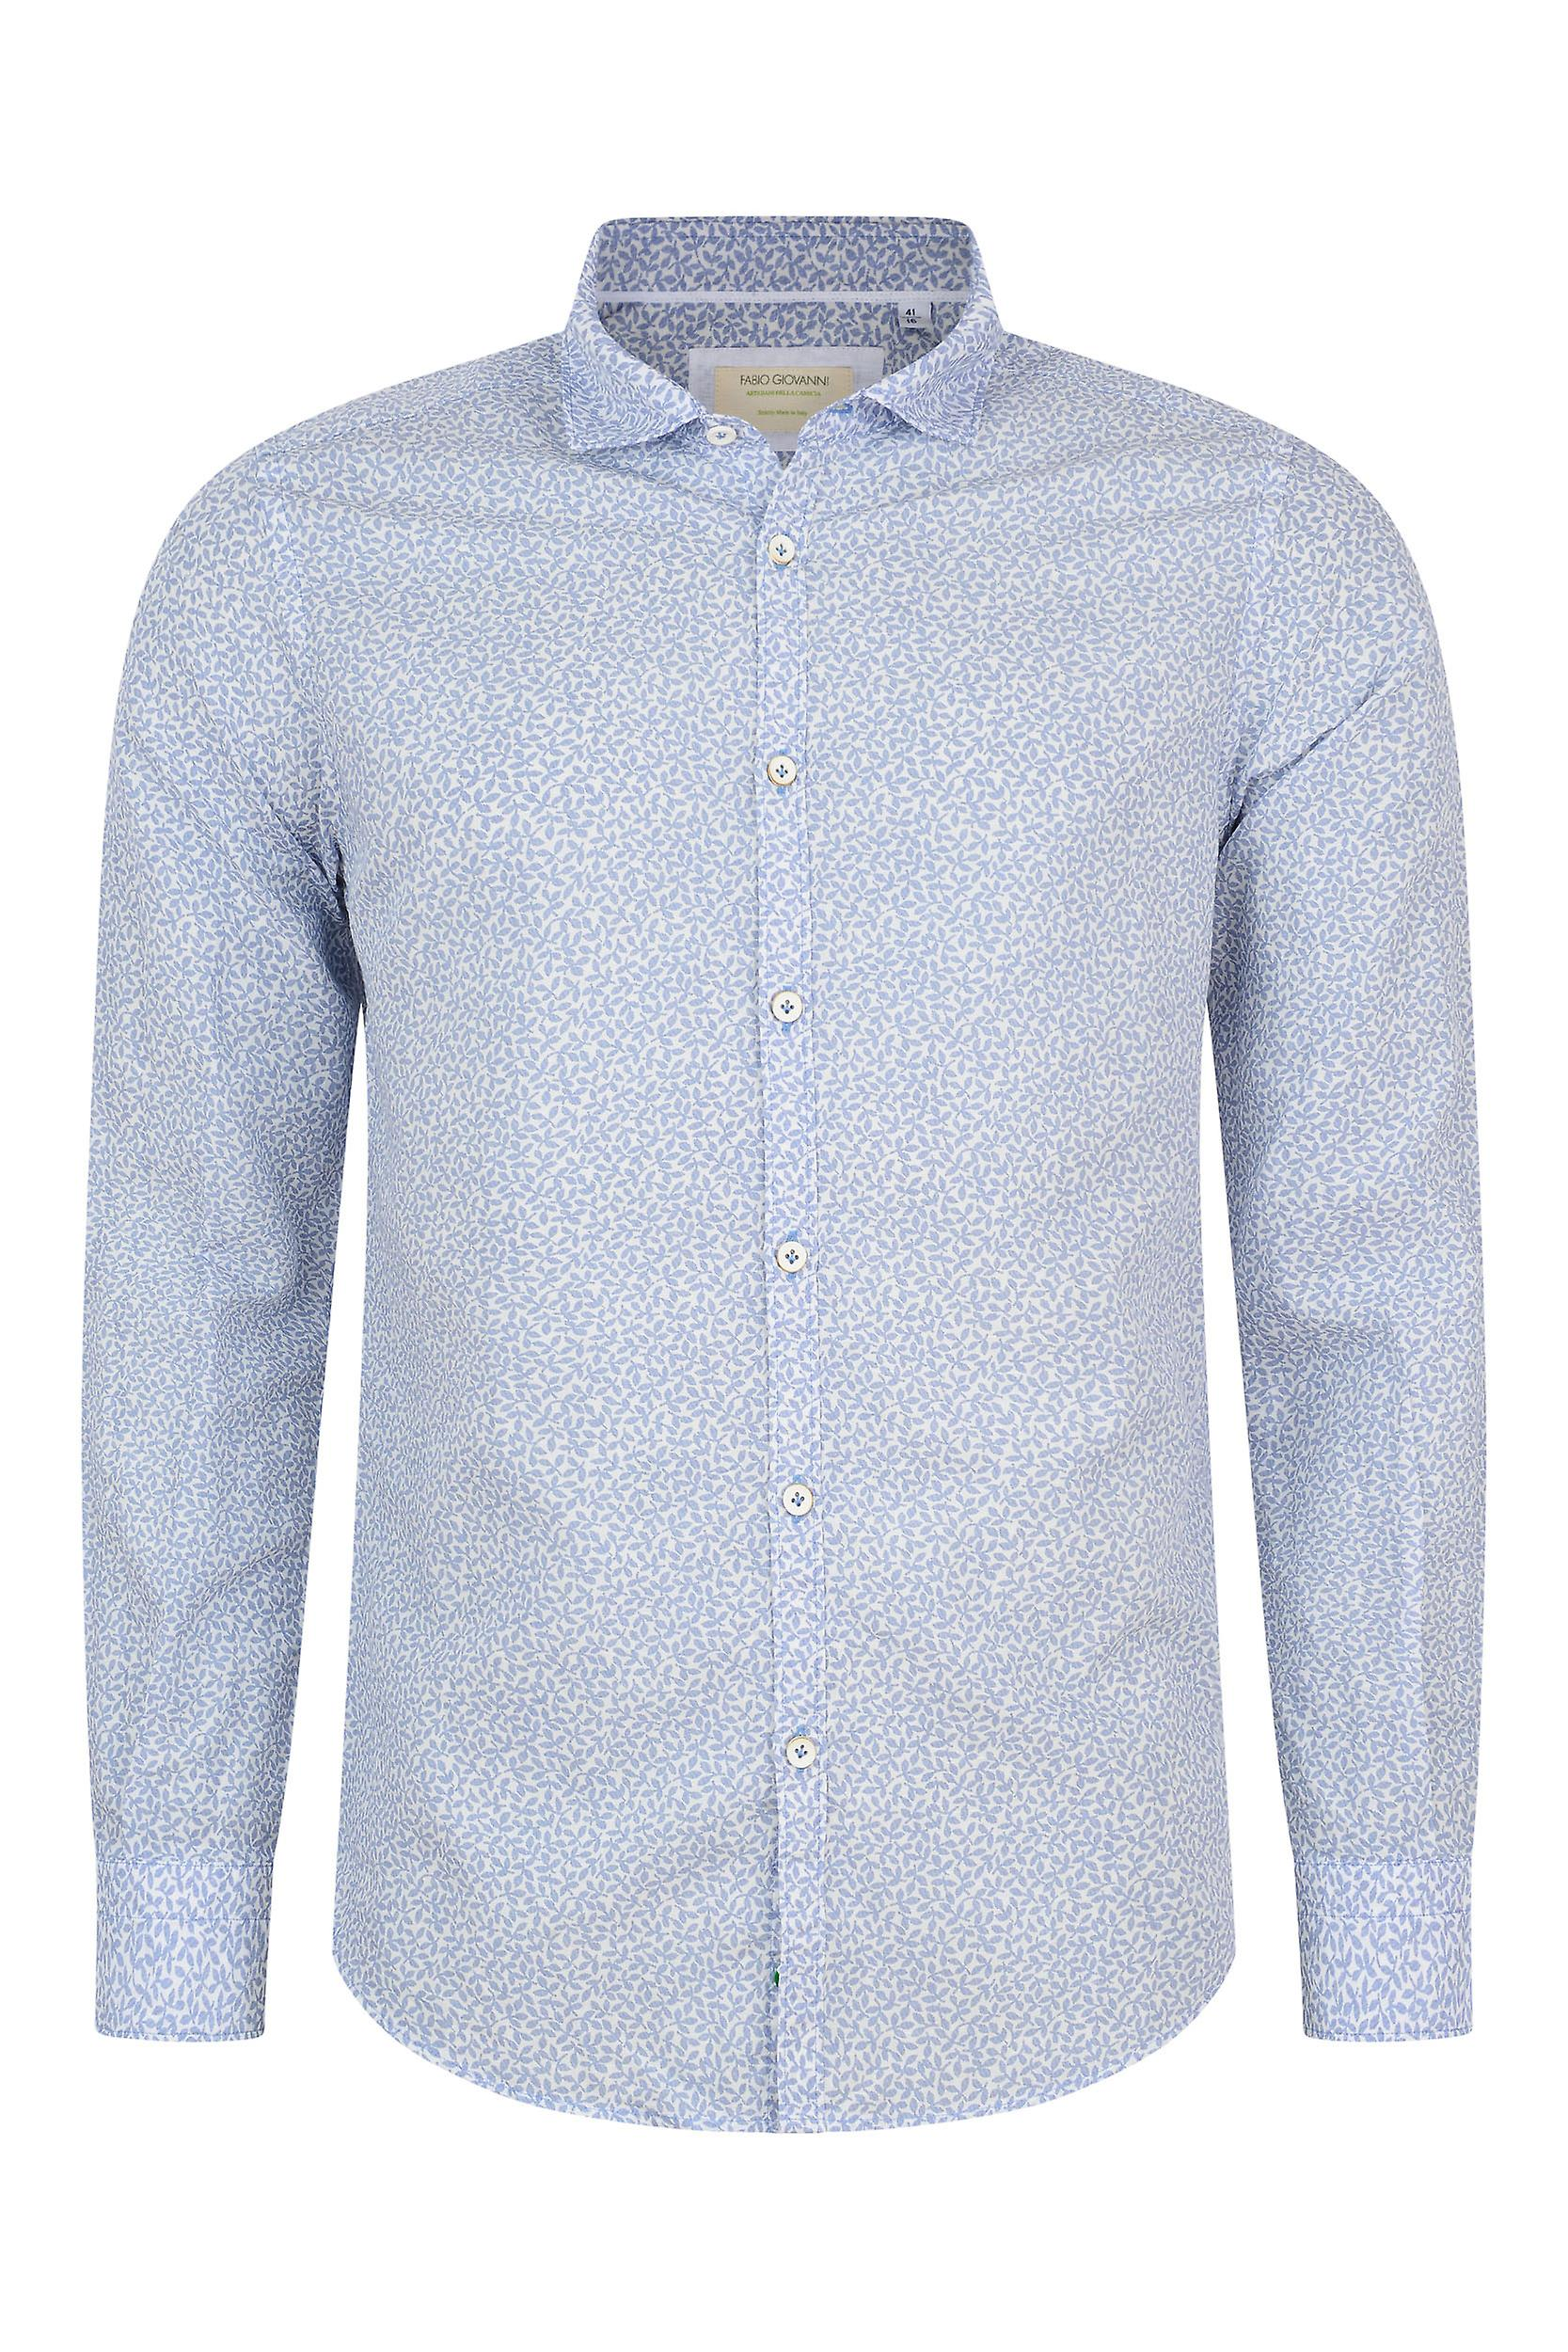 Fabio Giovanni Rizzuto Shirt - Luxurious Italian Linen & Cotton Blend with Soft Cutaway Collar